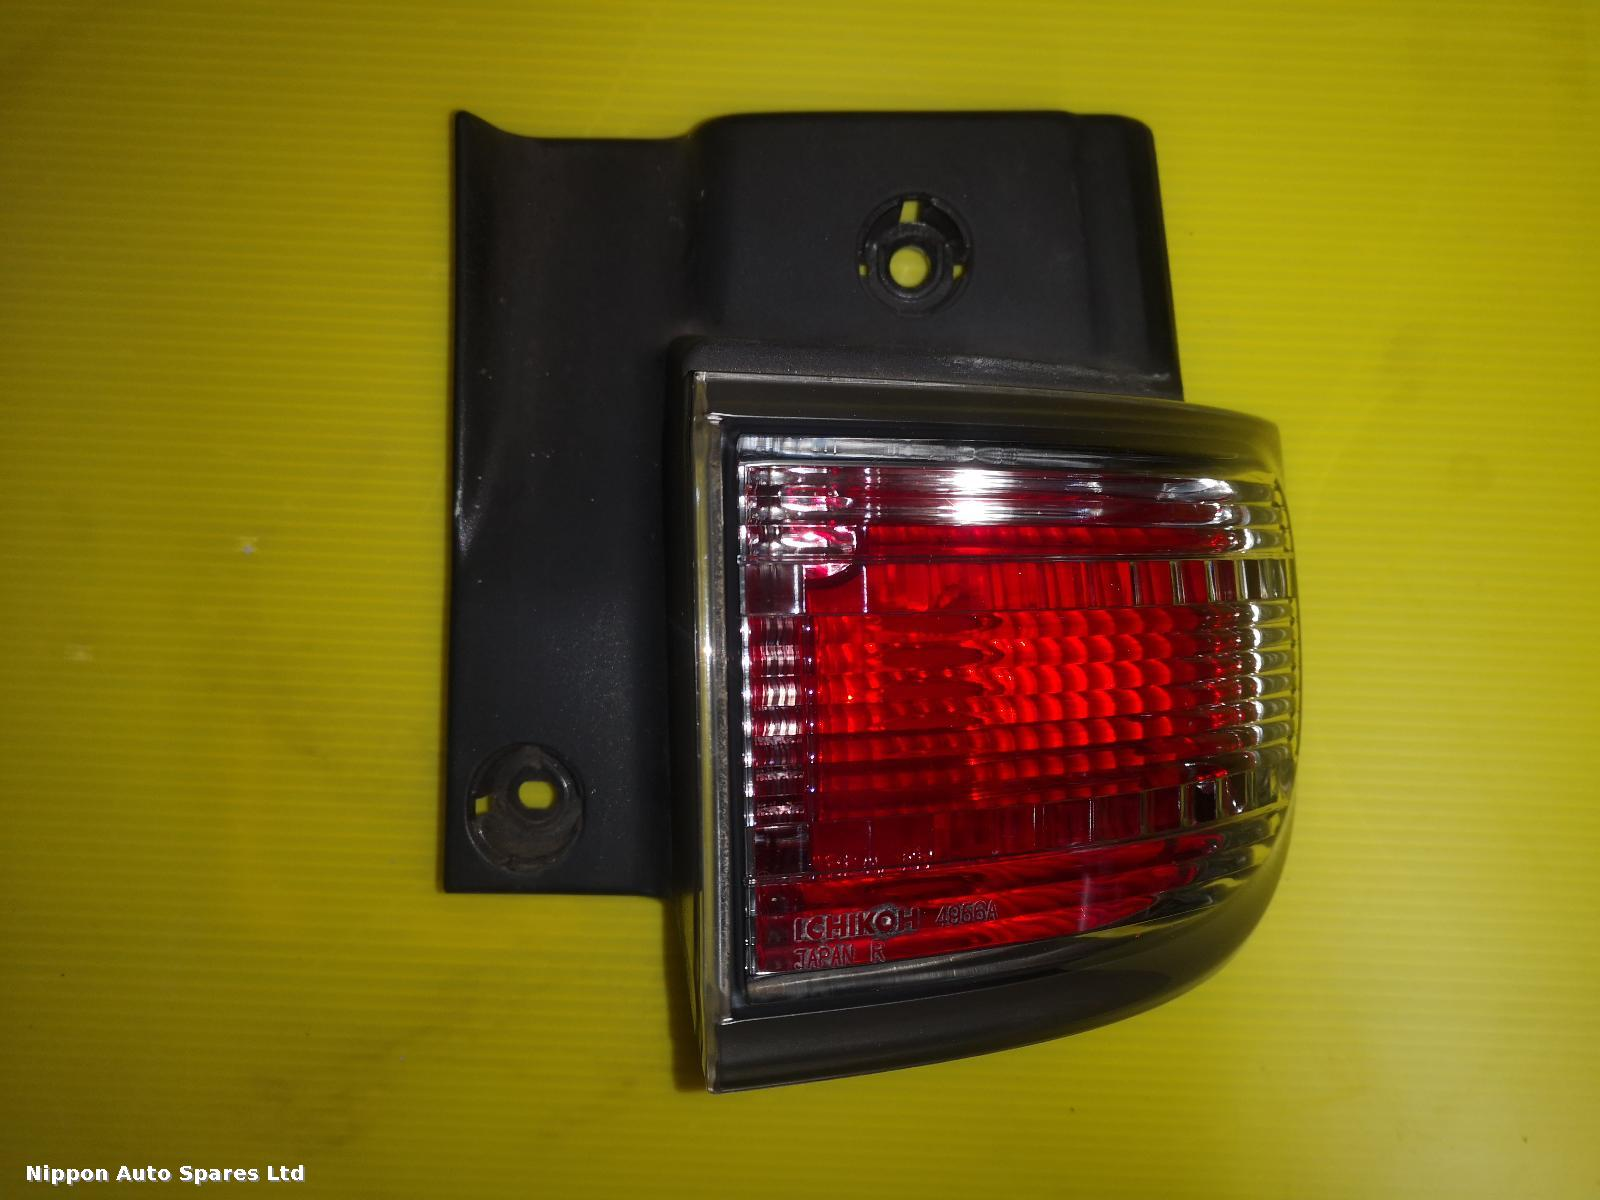 Nissan ELGRAND R Taillight TOP LIGHT CLEAR: 56074